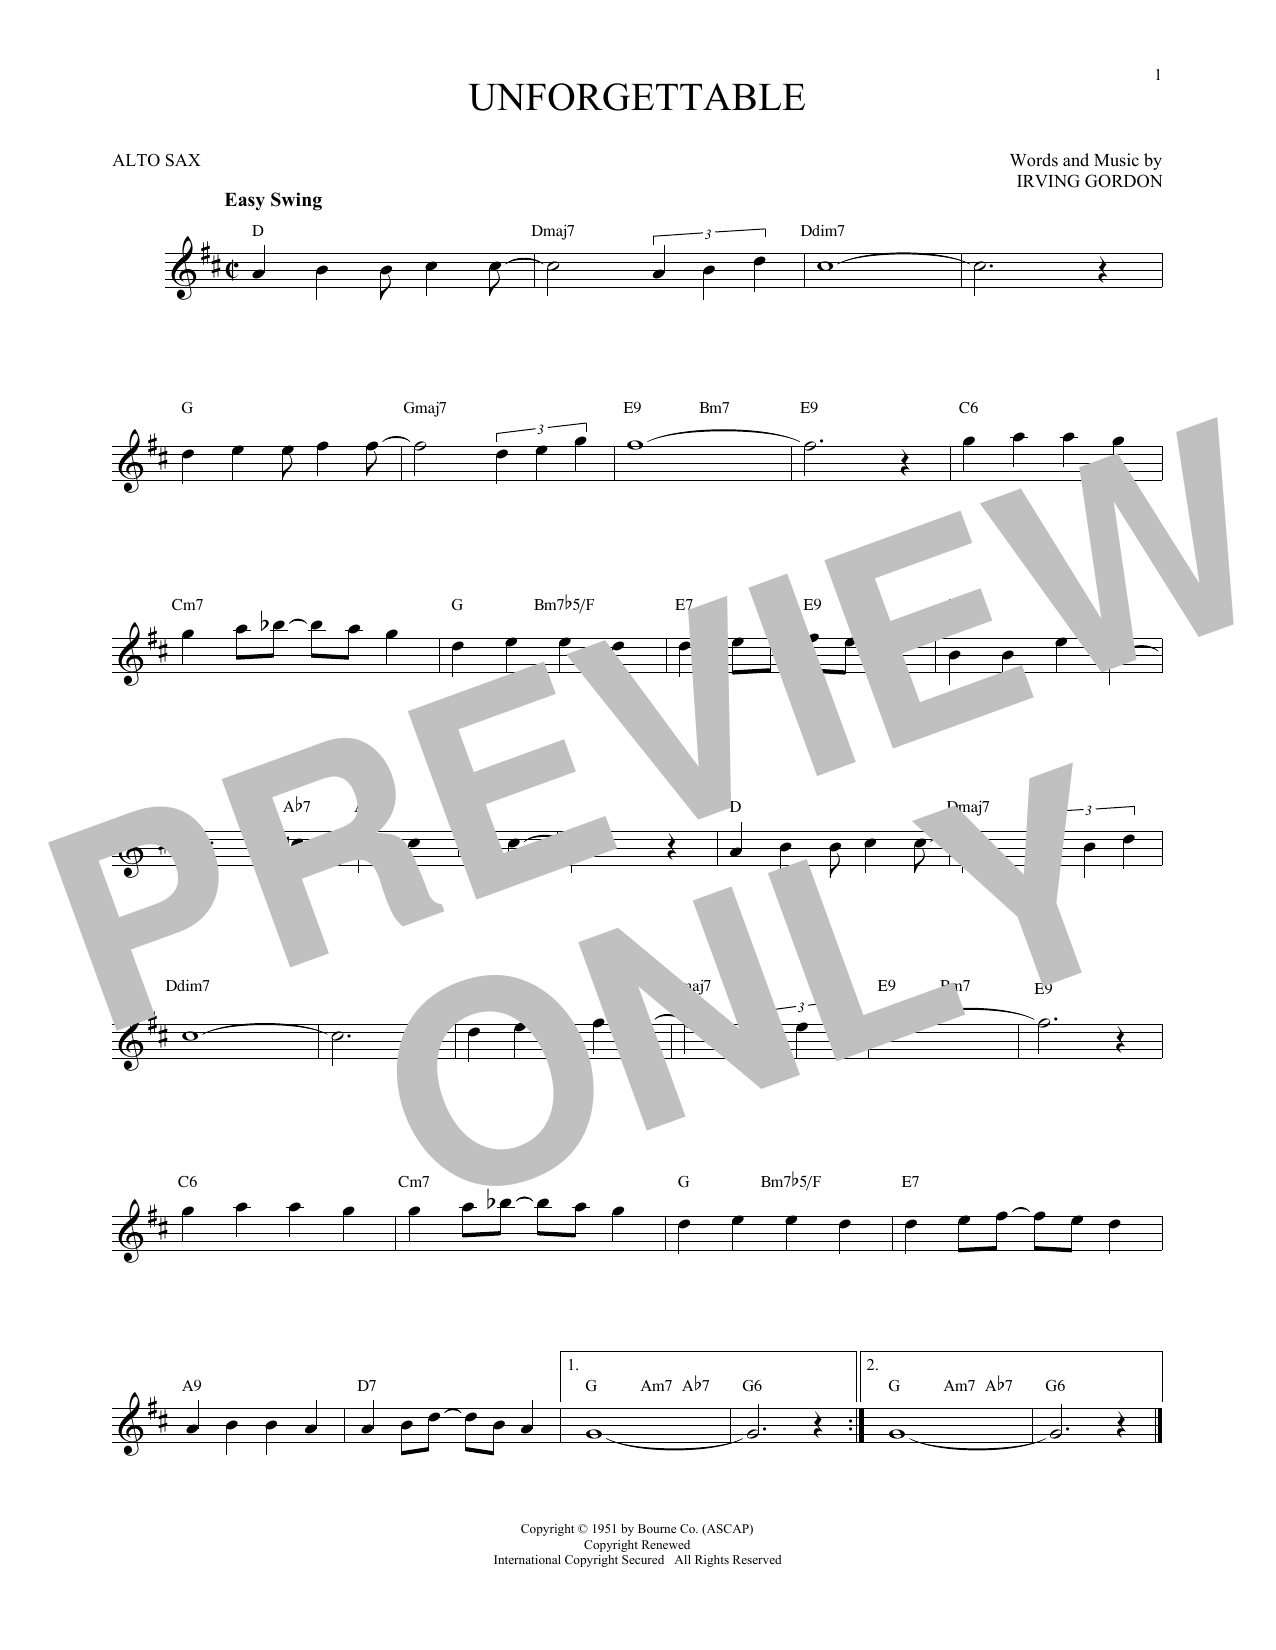 Irving Gordon Unforgettable Sheet Music Notes Chords Printable